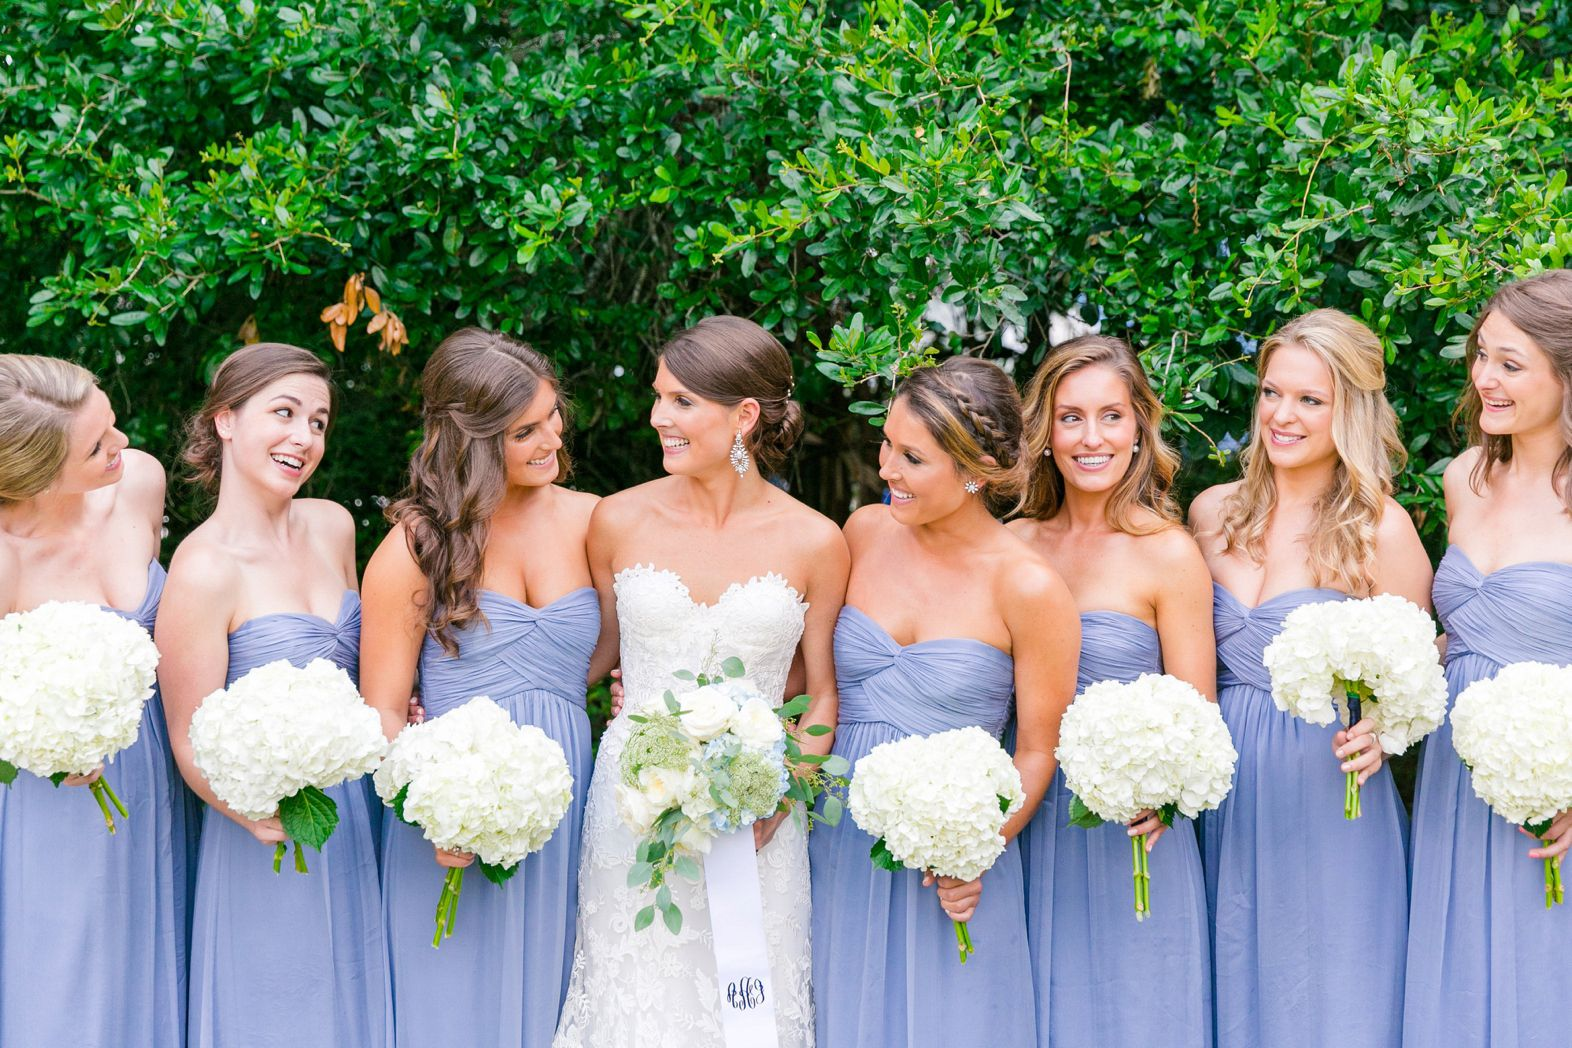 French bluecornflower blueperiwinkle bridesmaid dresses with french bluecornflower blueperiwinkle bridesmaid dresses with hydrangeas queen annes lace ombrellifo Image collections